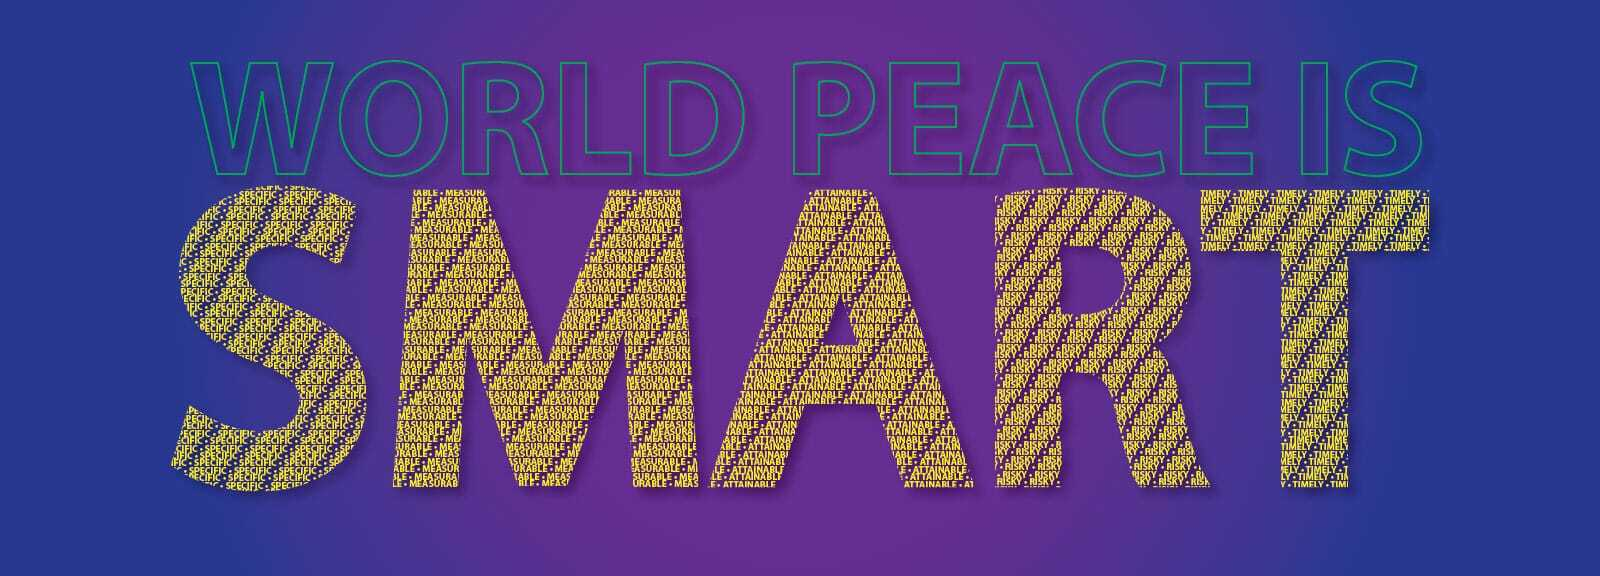 featured image for the blog Promote World Peace with SMART Goals